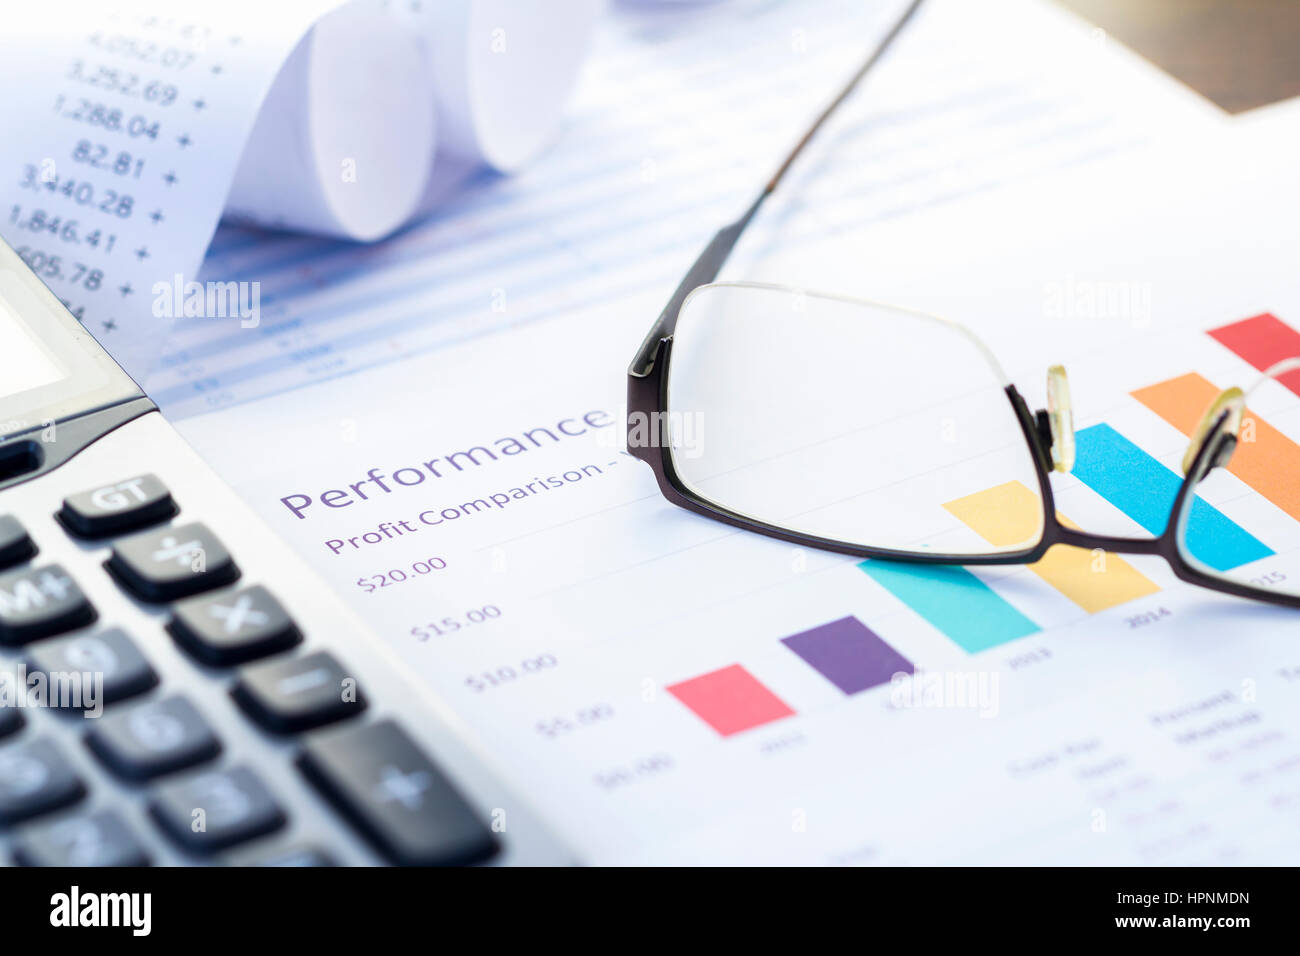 Business performance analysis with colorful bar graph and calculator business performance analysis with colorful bar graph and calculator ccuart Image collections